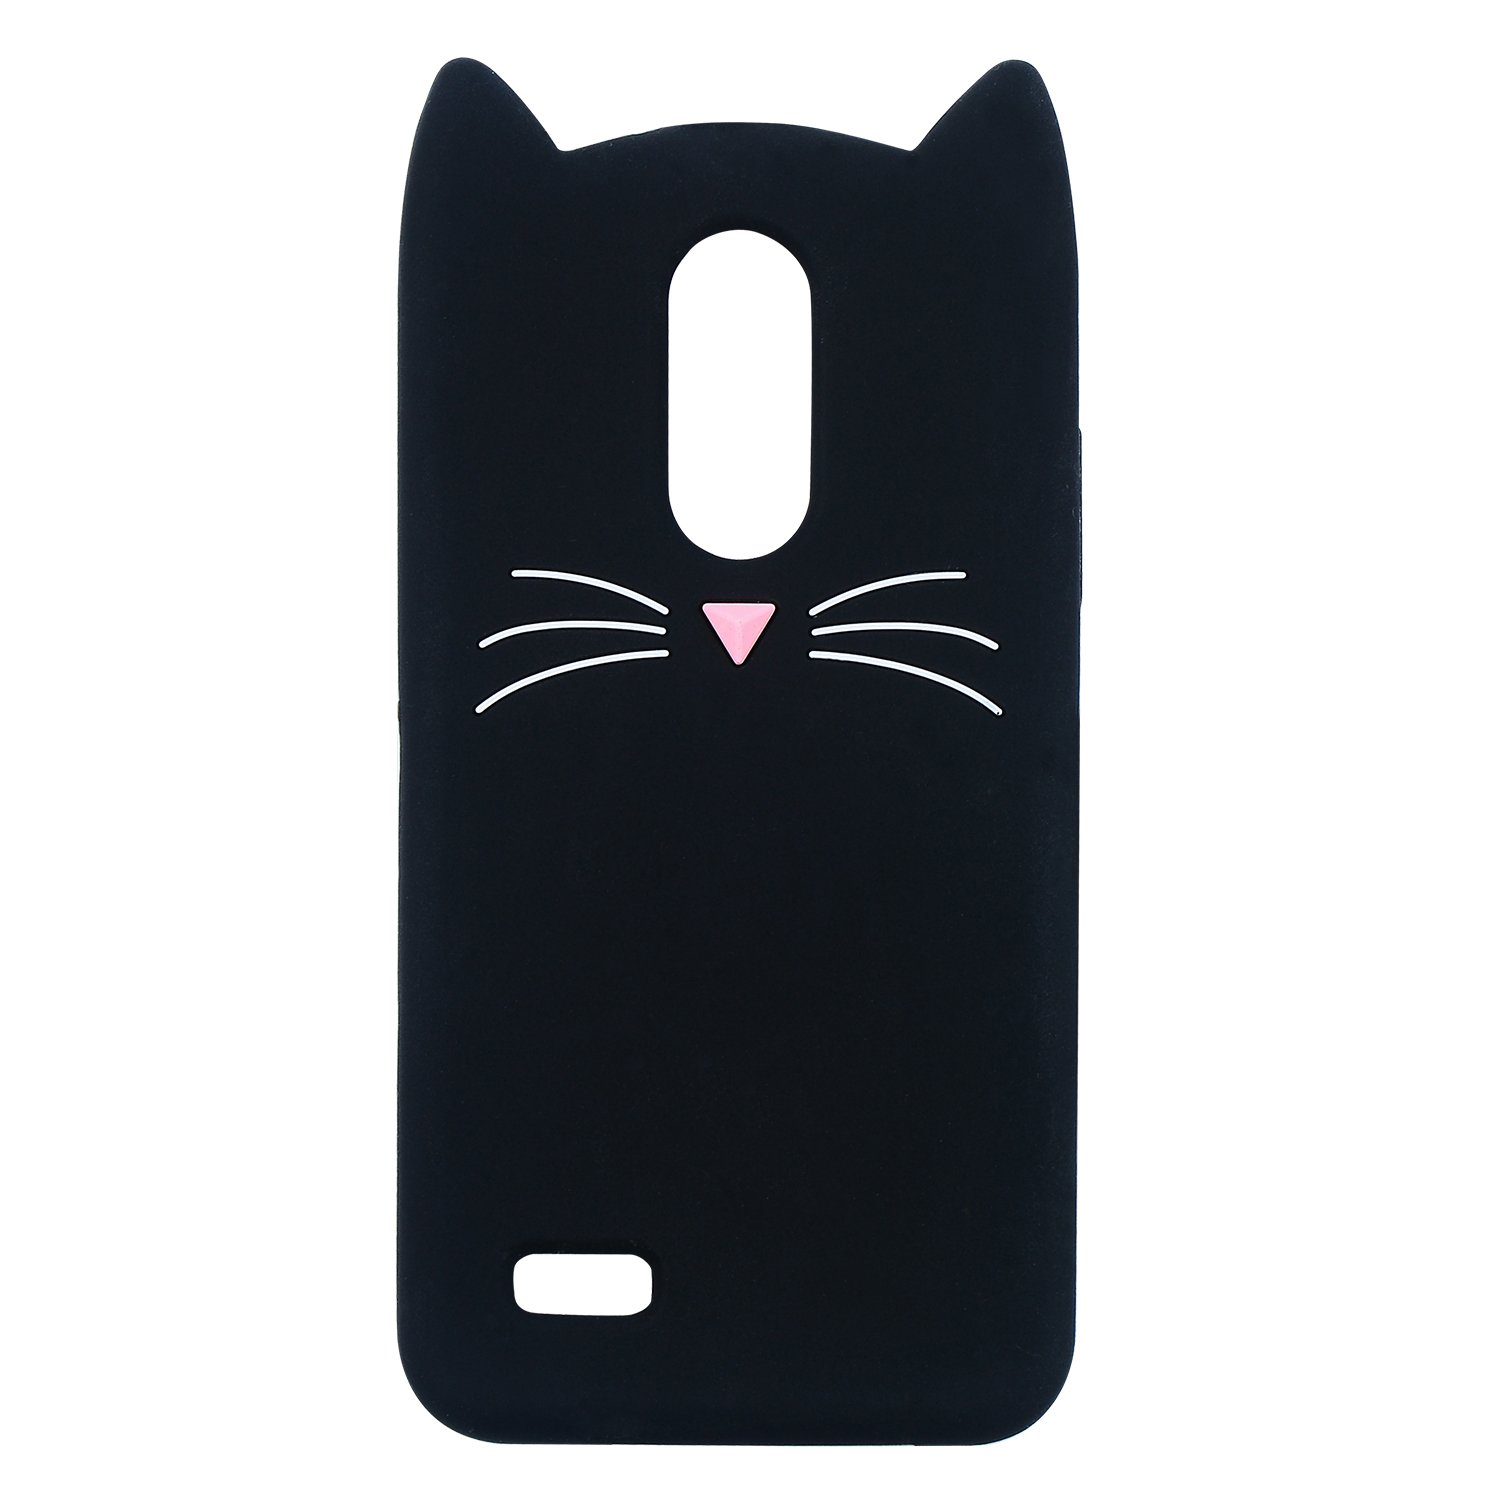 Joyleop Case for LG K20 Plus/K20V,Cartoon Soft Silicone Cute 3D Fun Cool Cover,Kawaii Unique Kids Girls Lady Gift,Lovely Animal Character Rubber Cases Shockproof Skin Protector LG Harmony Black Cat